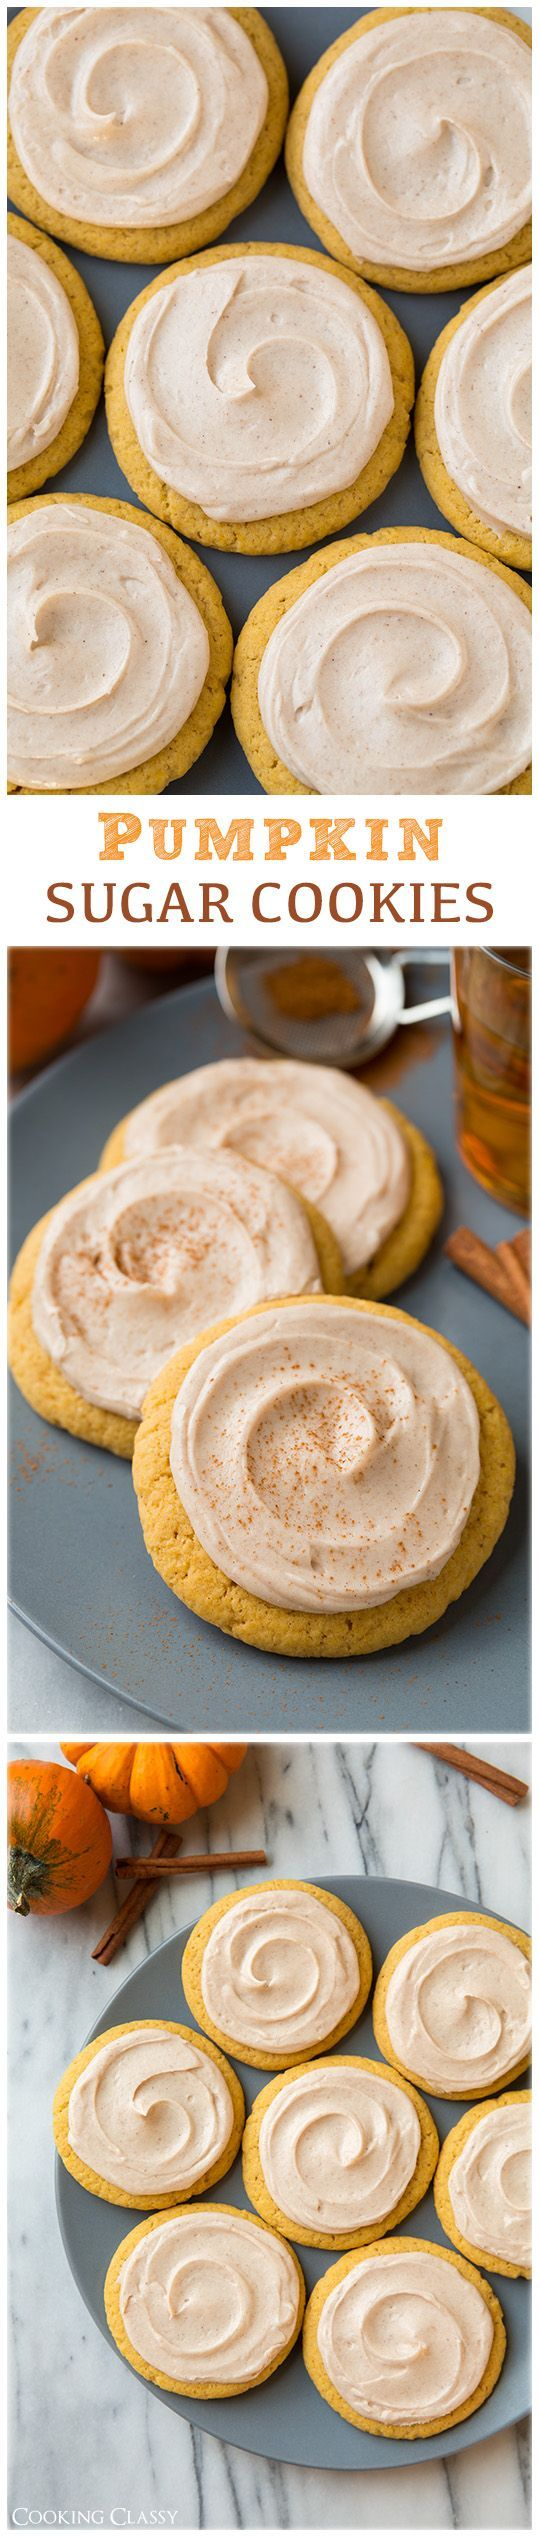 Pumpkin Sugar Cookies with Cinnamon Cream Cheese Frosting - these are like the…